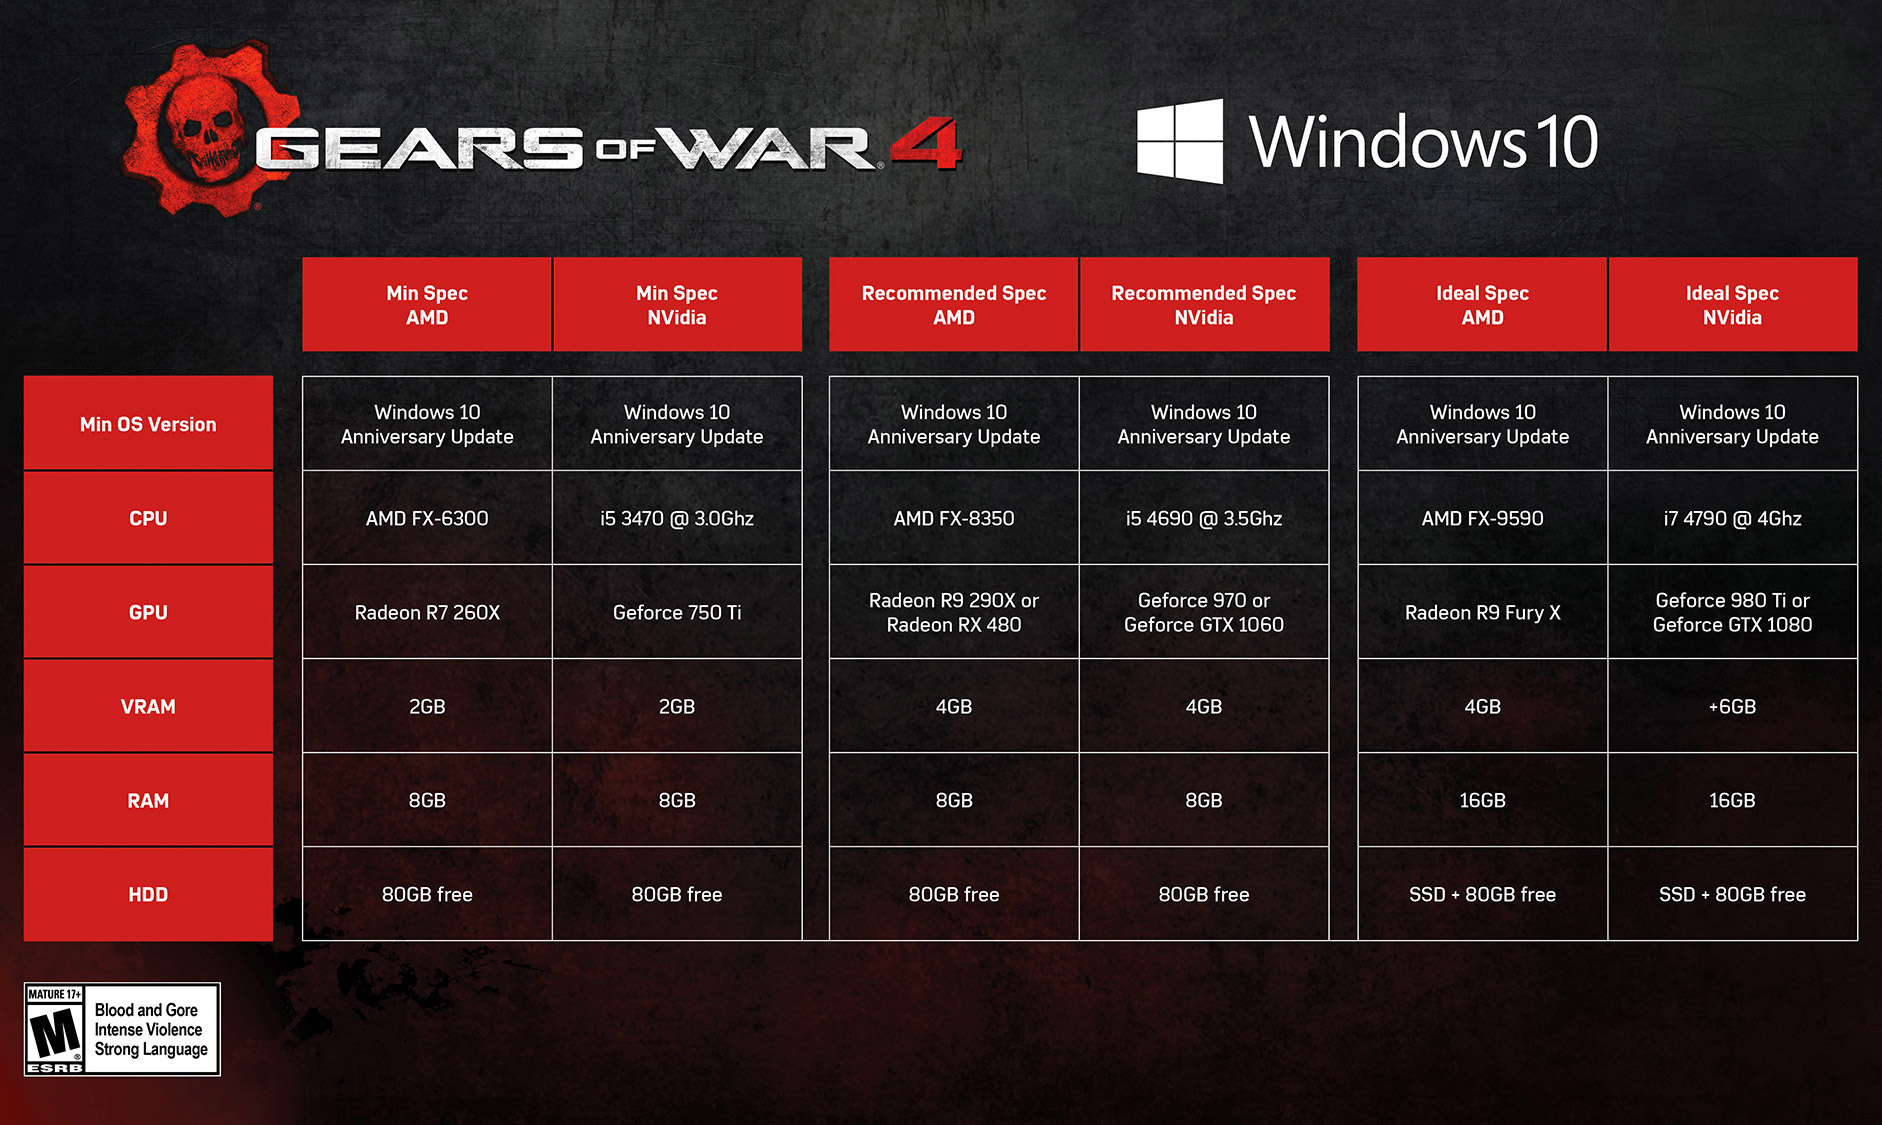 Gears of War 4 - PC Specifications